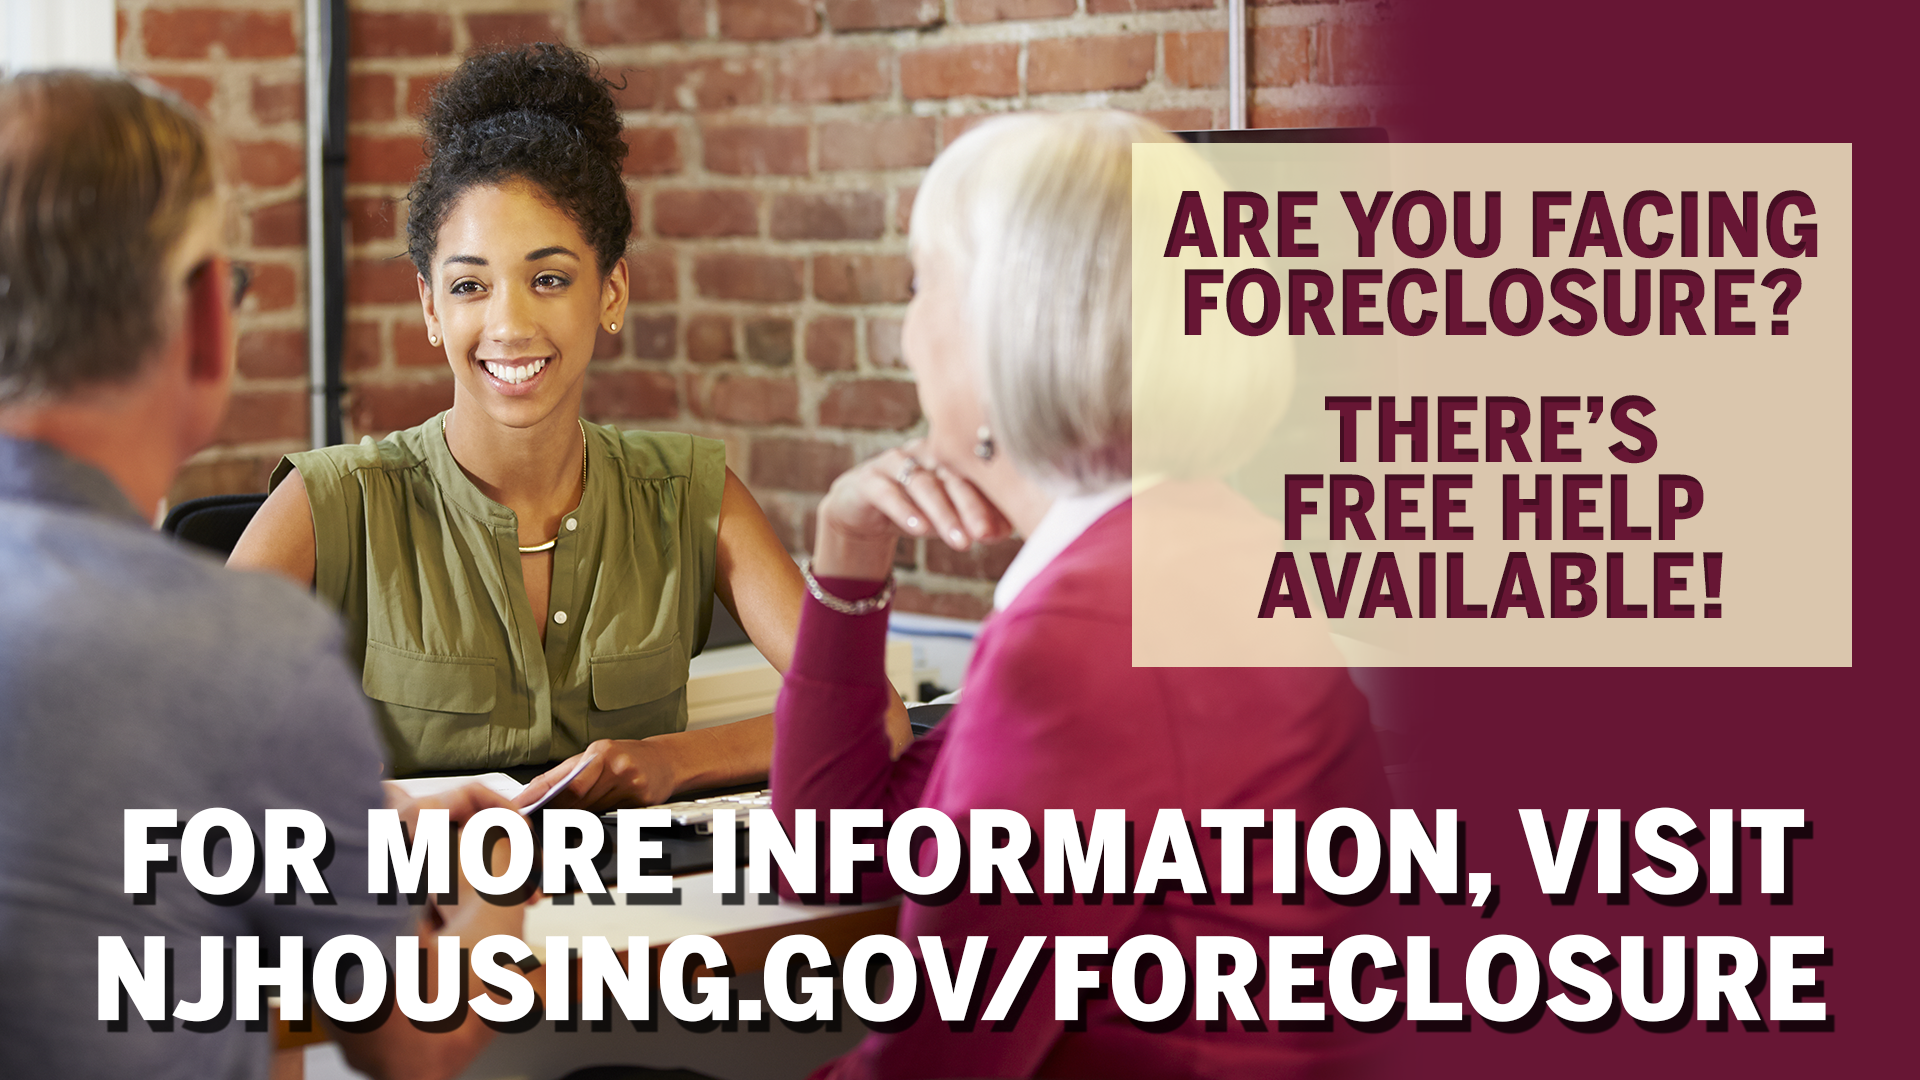 Are you facing foreclosure?  There's FREE Help Available! 					For more information, visit njhousing.gov/foreclosure